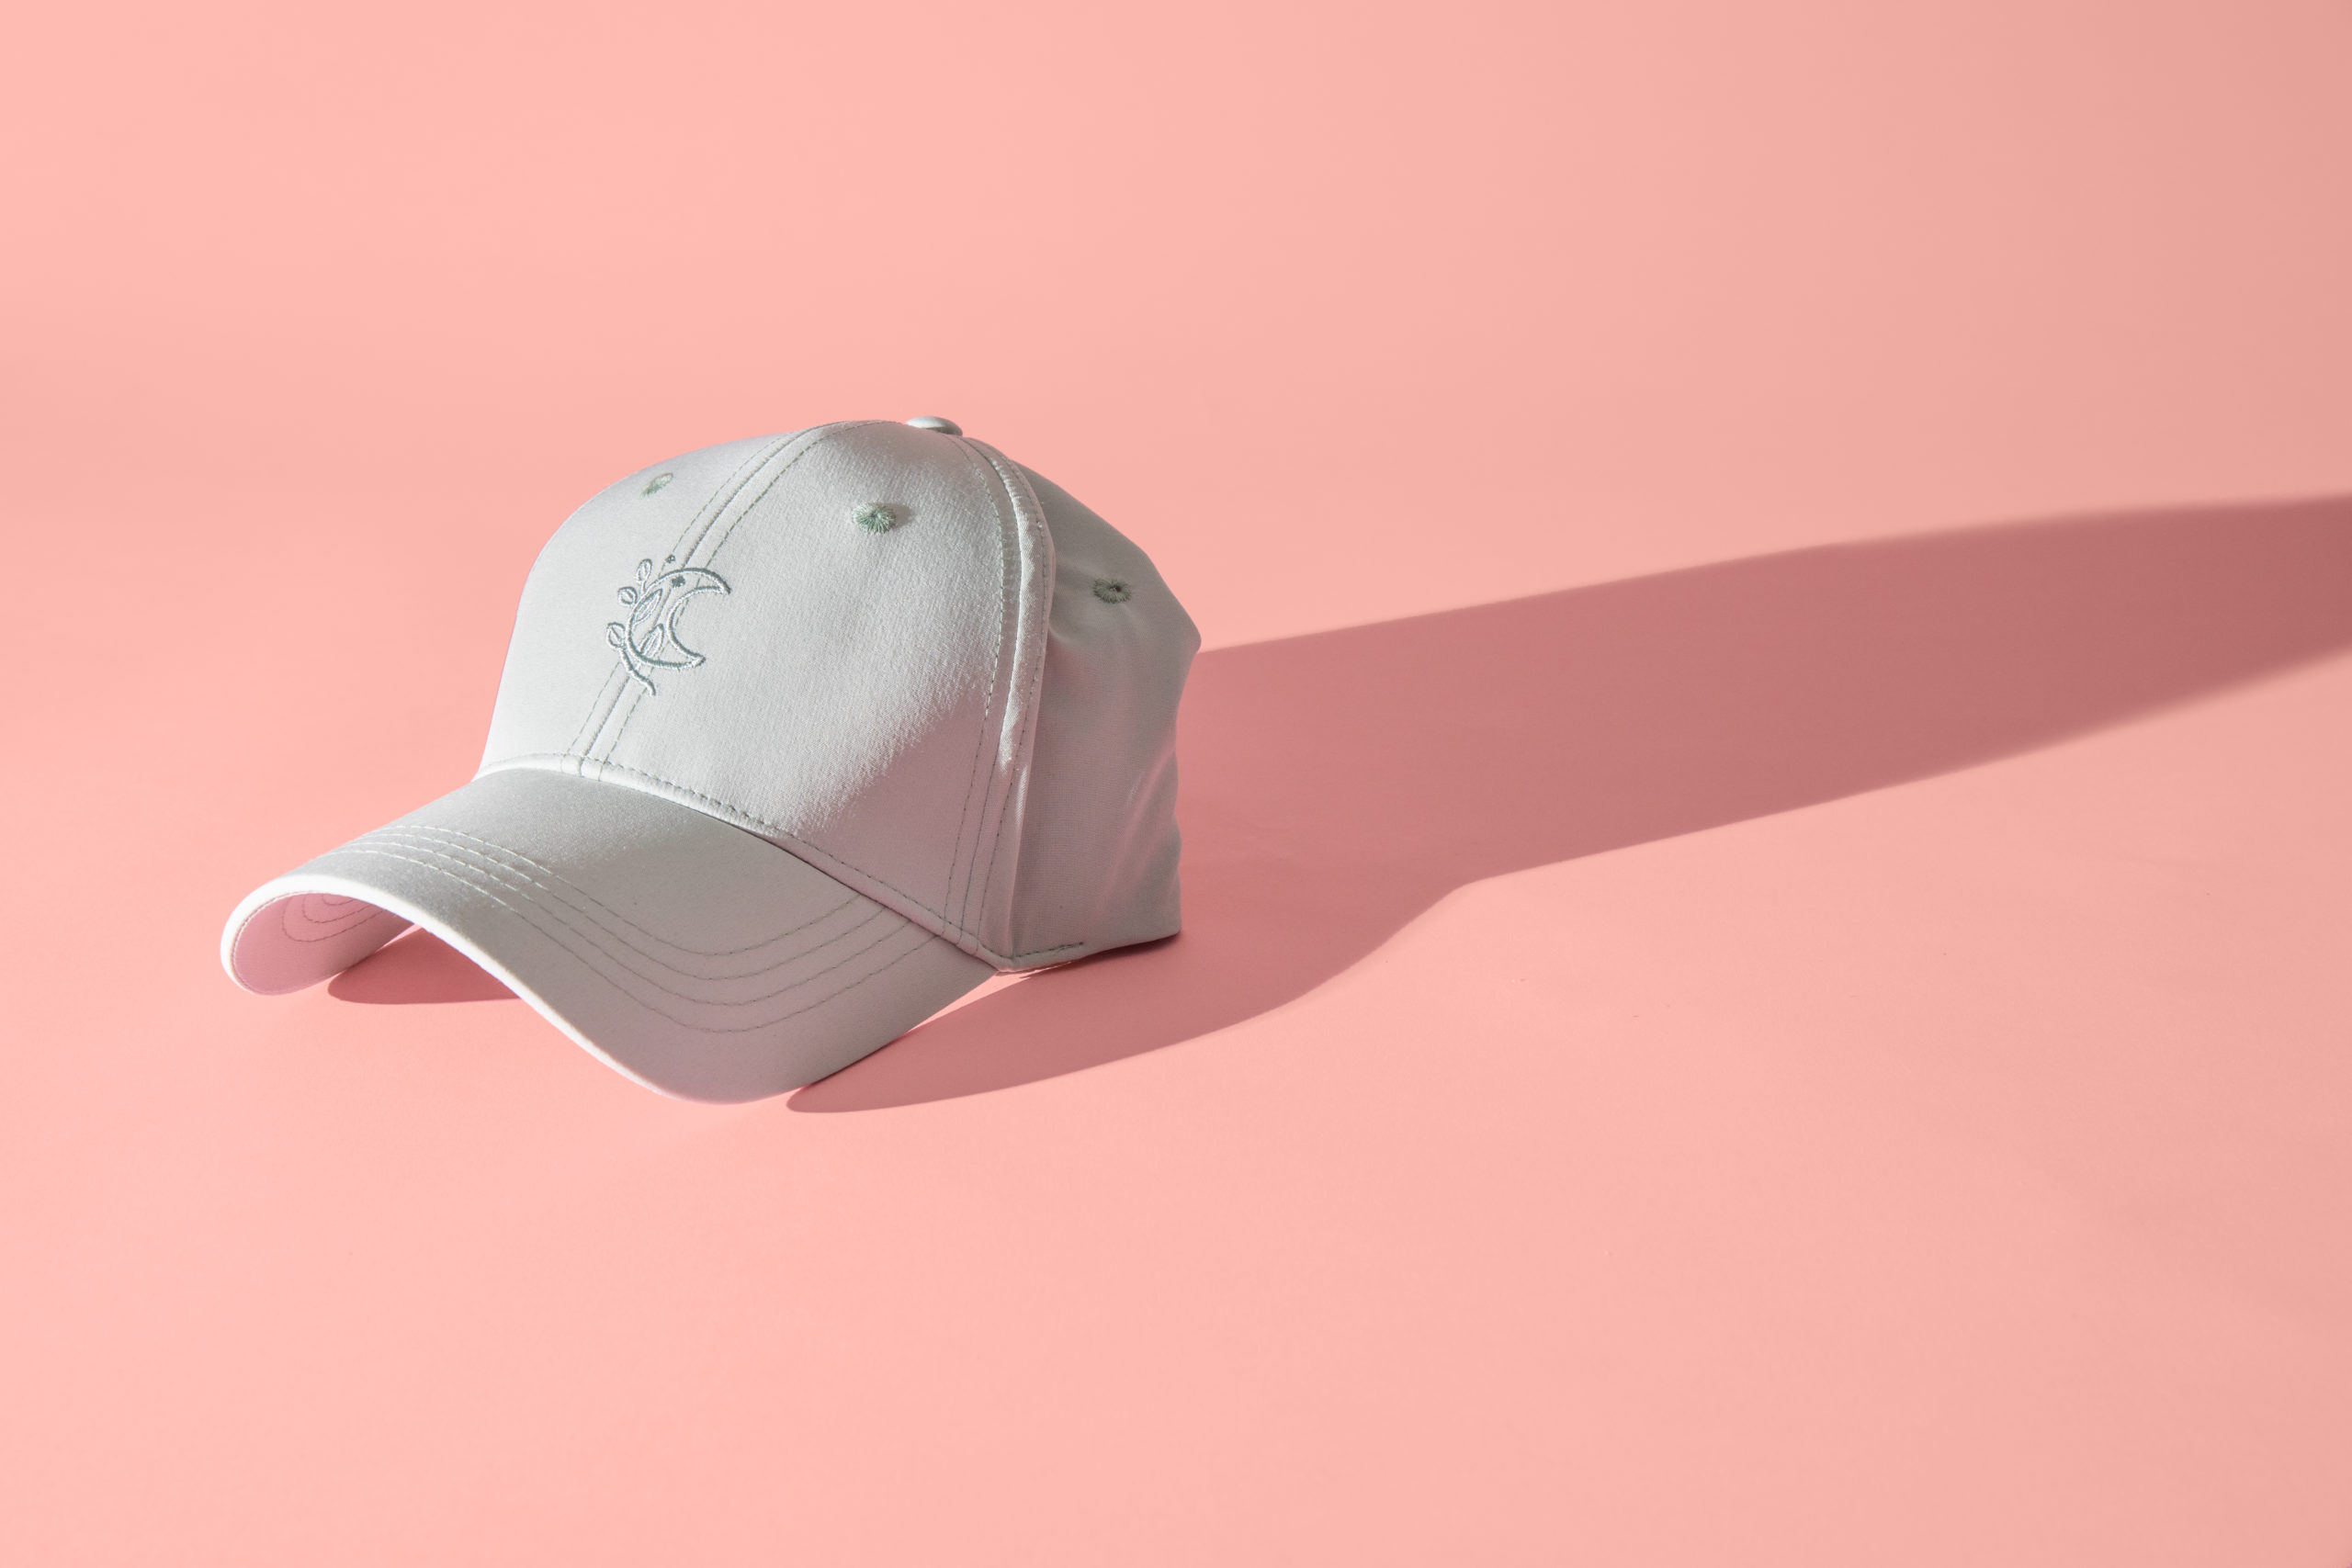 blogilates white hat with ponytail hole in back moon design on front